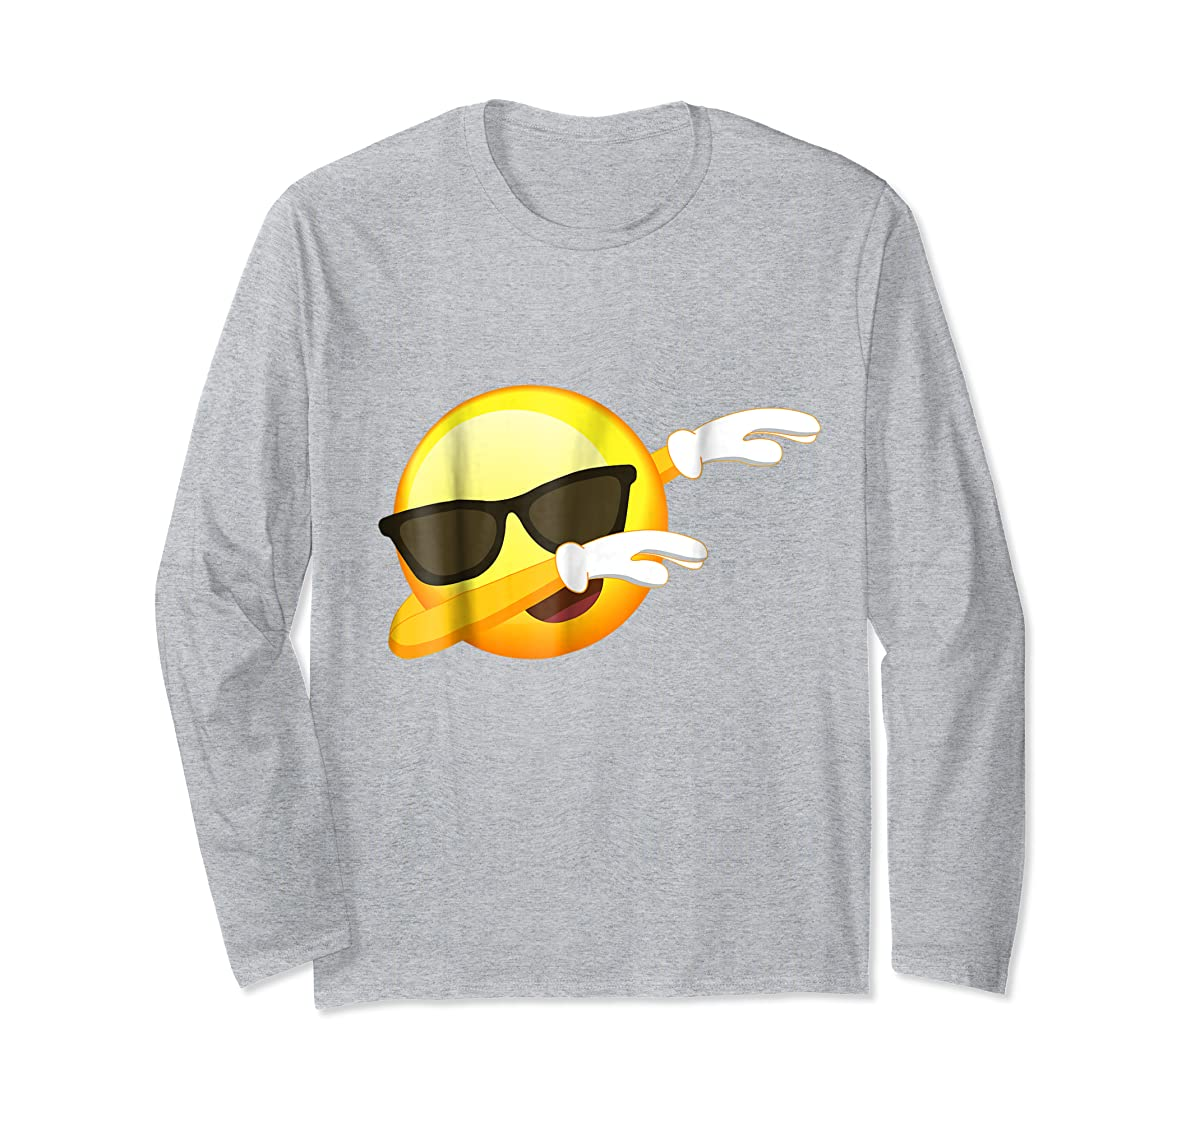 Funny Dabbing Emoji Shirt - Cool Emoji Dab T-Shirt-Long Sleeve-Sport Grey